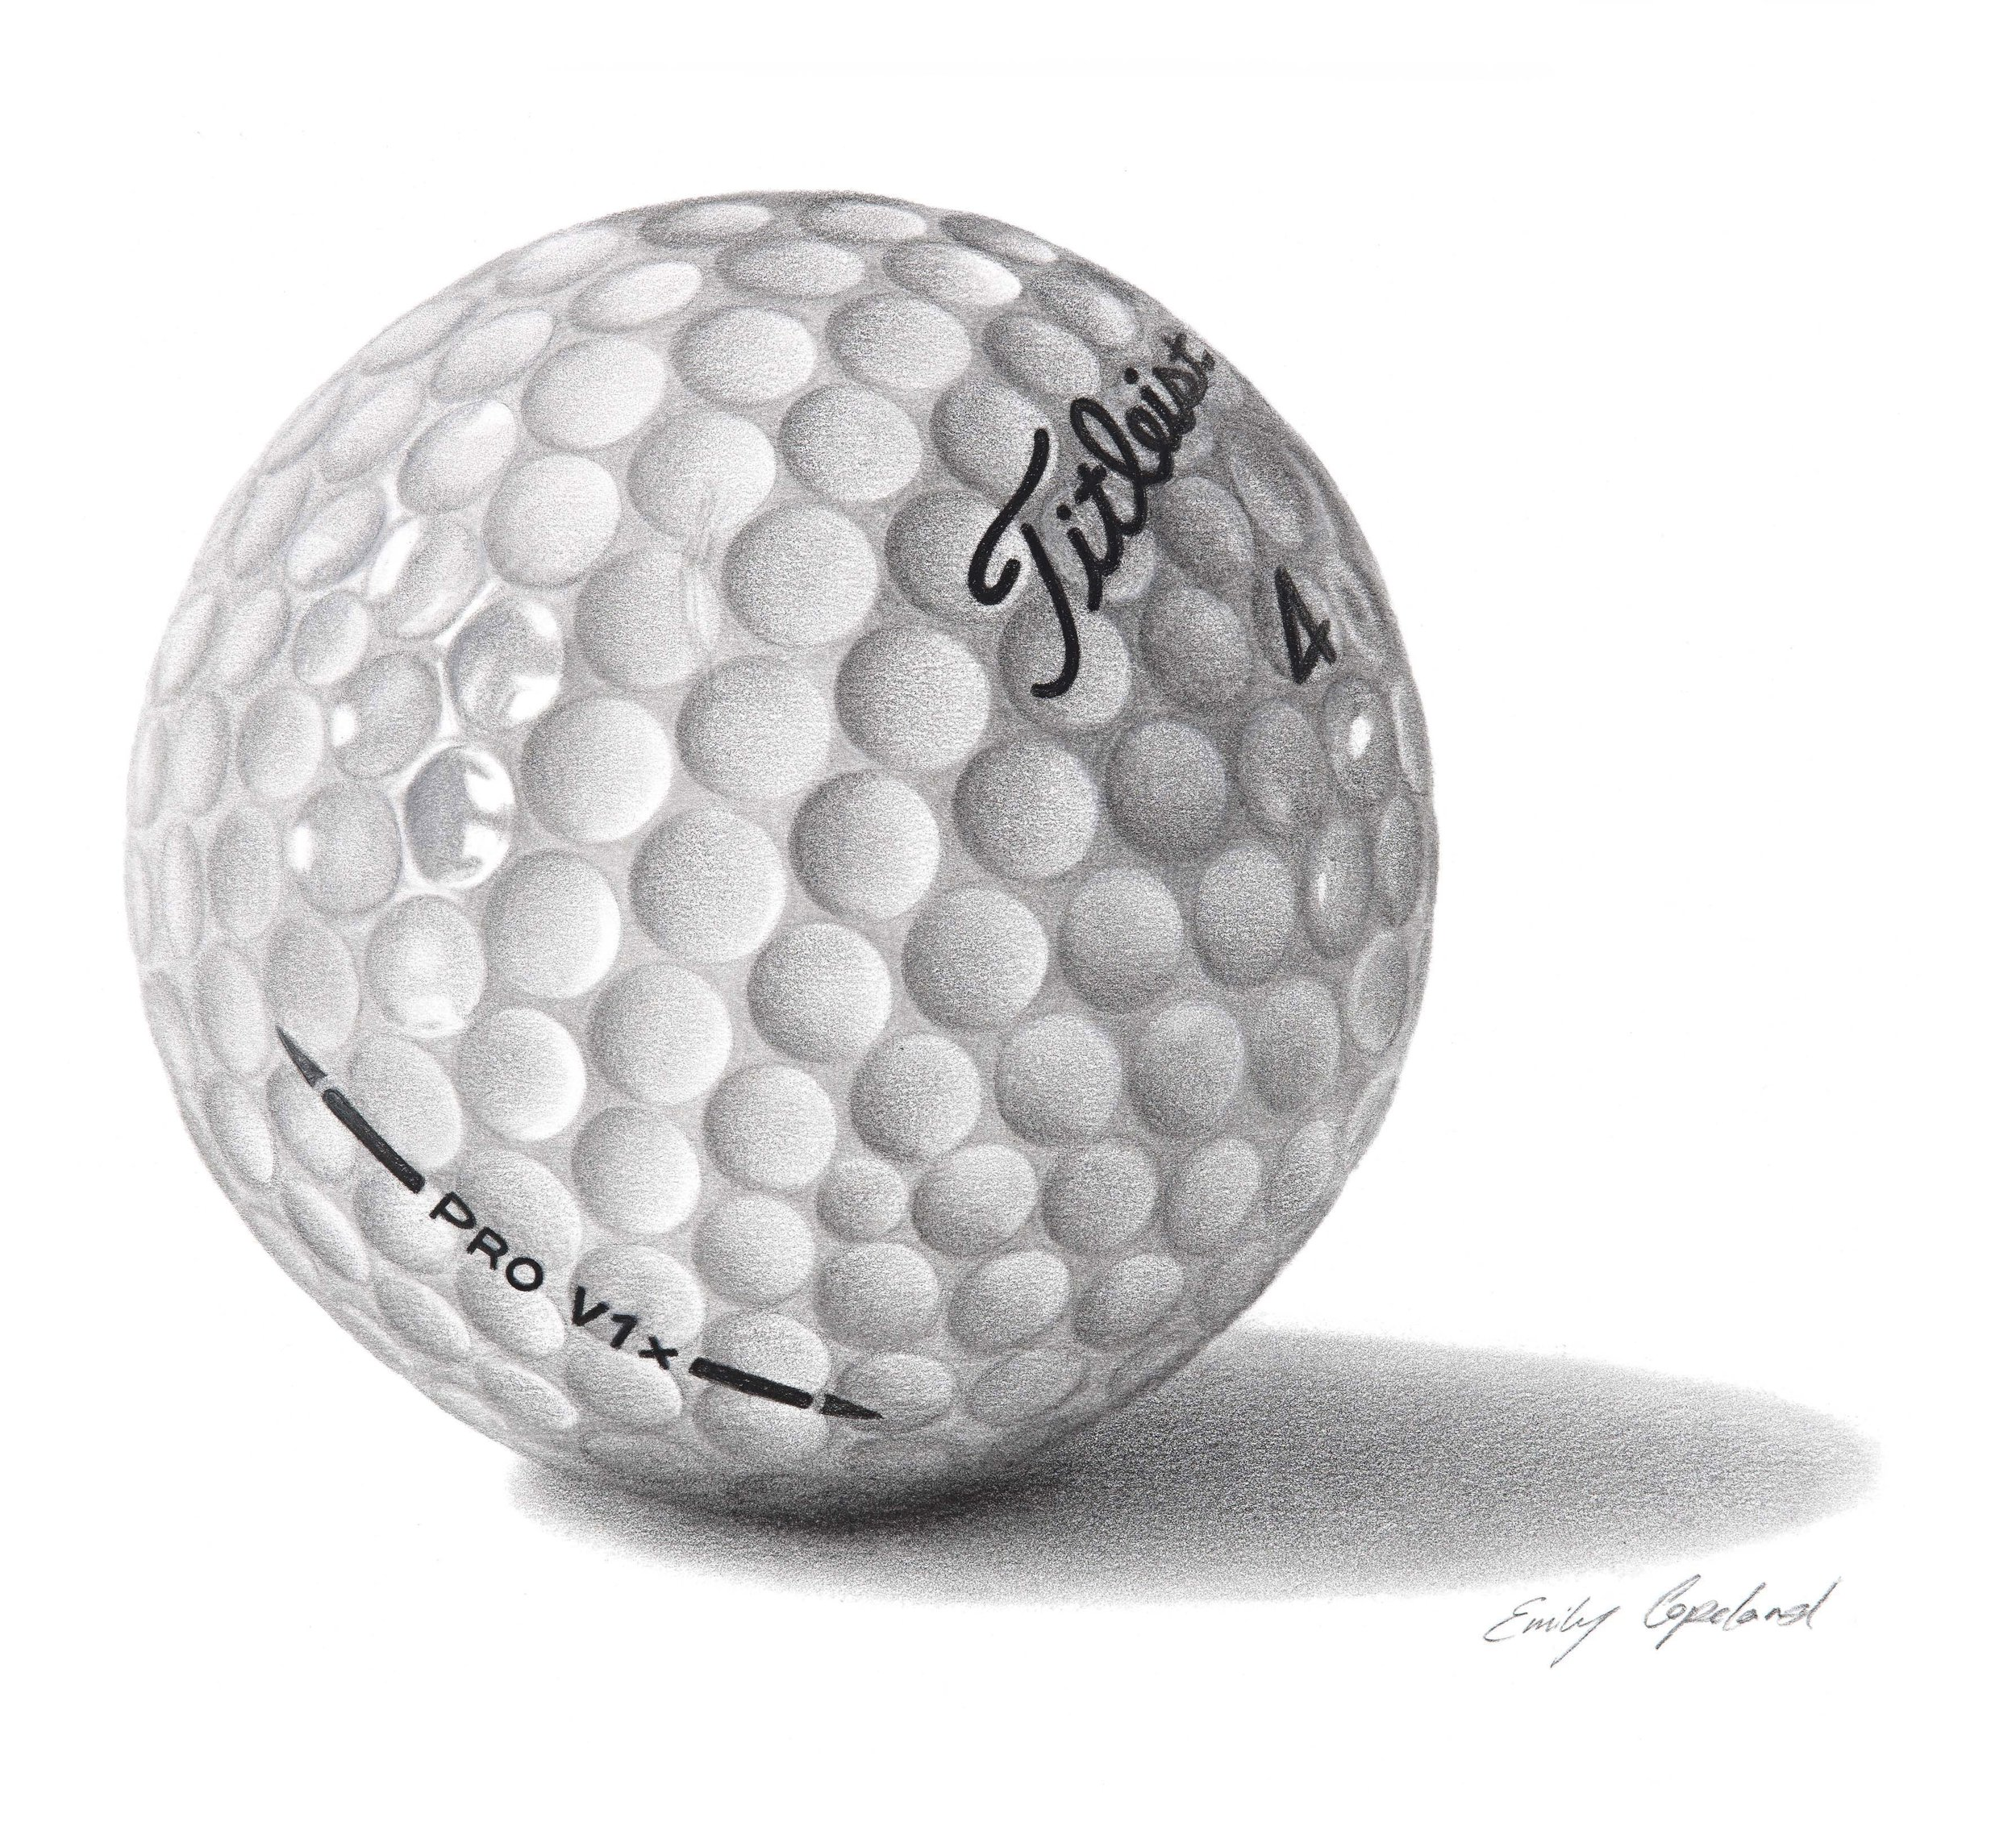 Charcoal Drawing of a Golf Ball